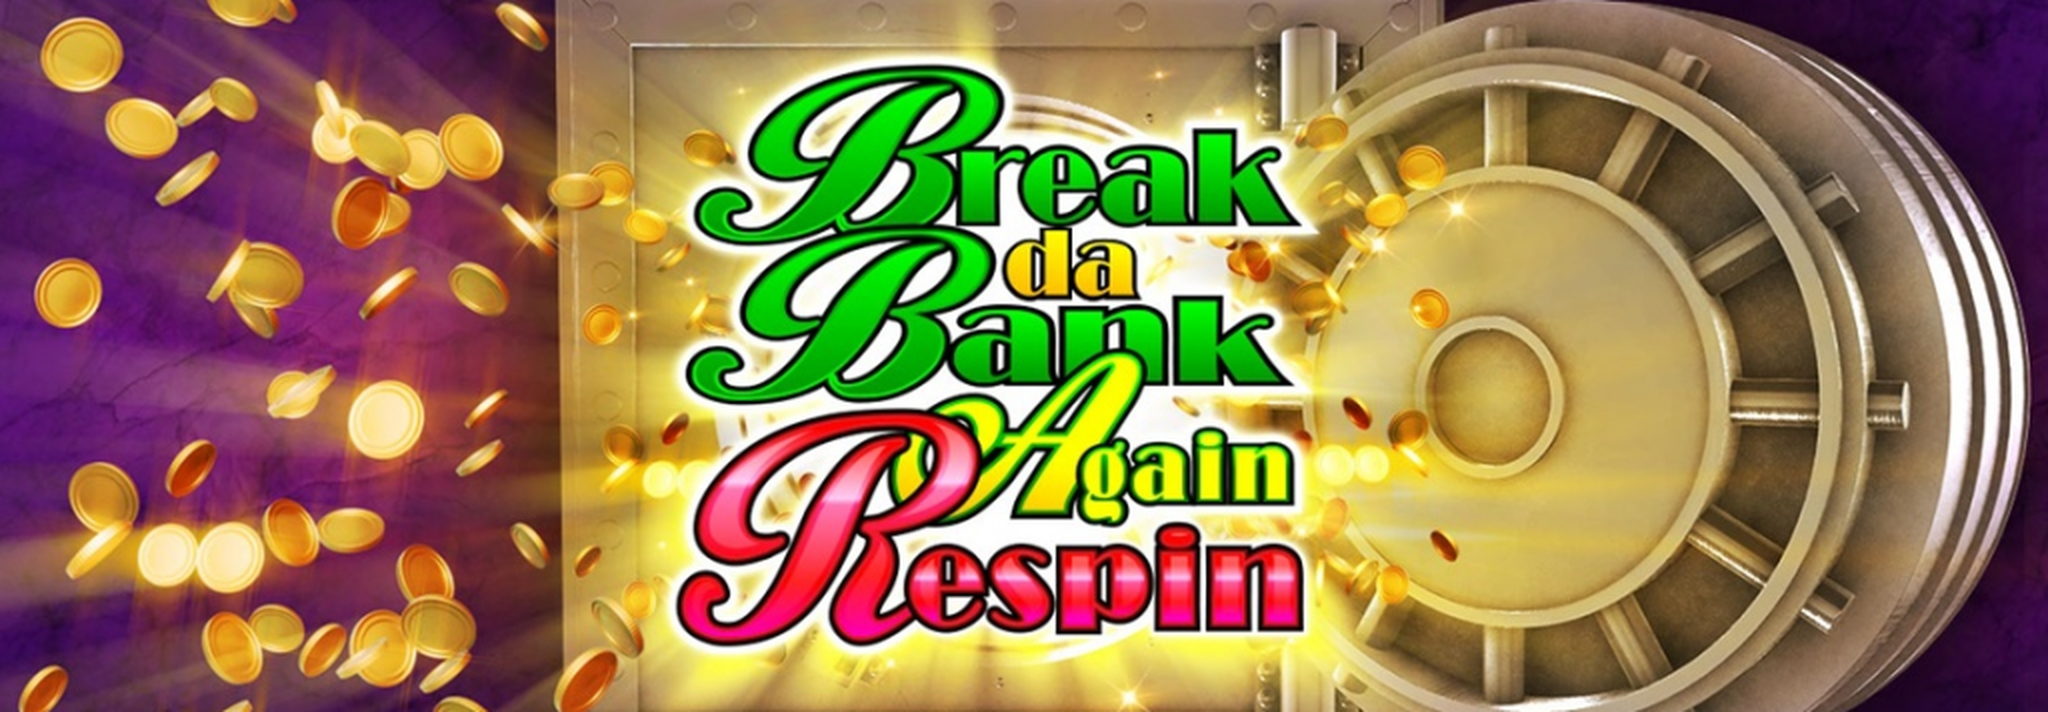 Se Break Da Bank Again Respin Online Slot Demo Game, Gameburger Studios